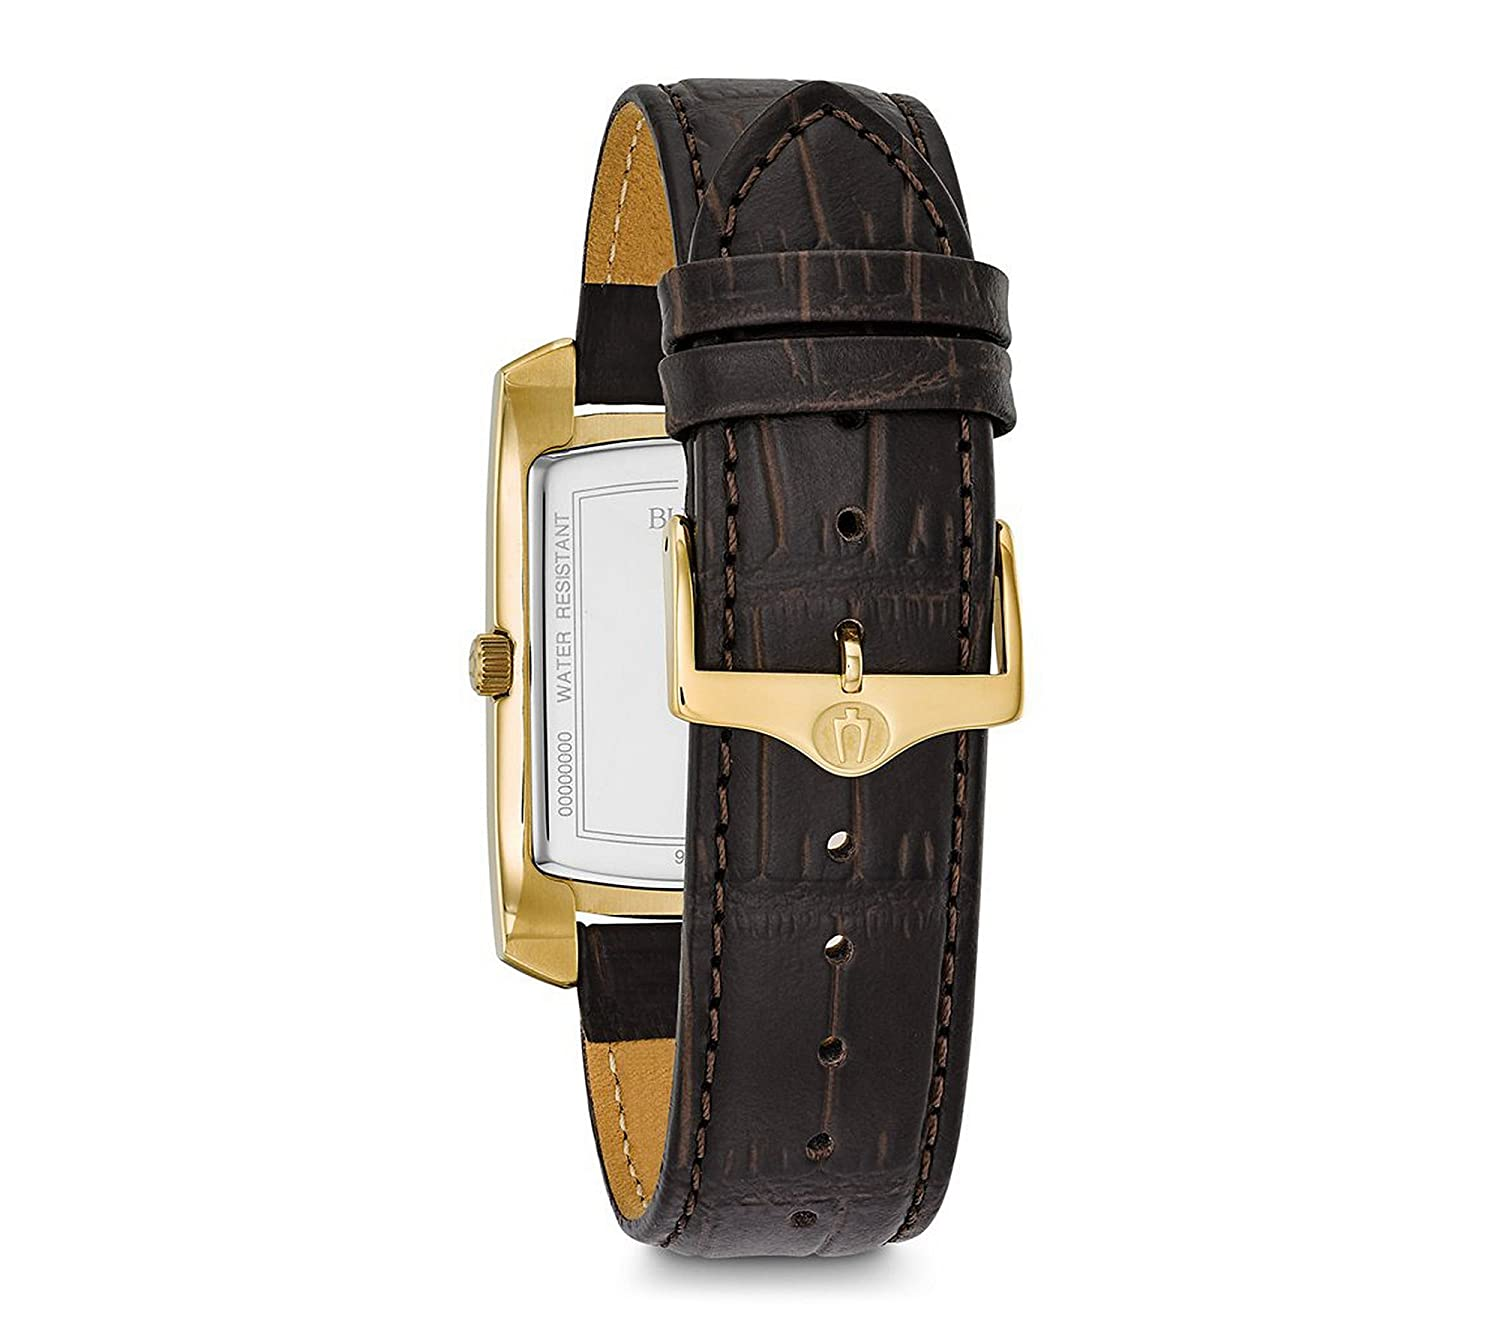 Bulova Mens Classic Crocodile Grain Leather Strap Rectangular Watch | Amazon.com